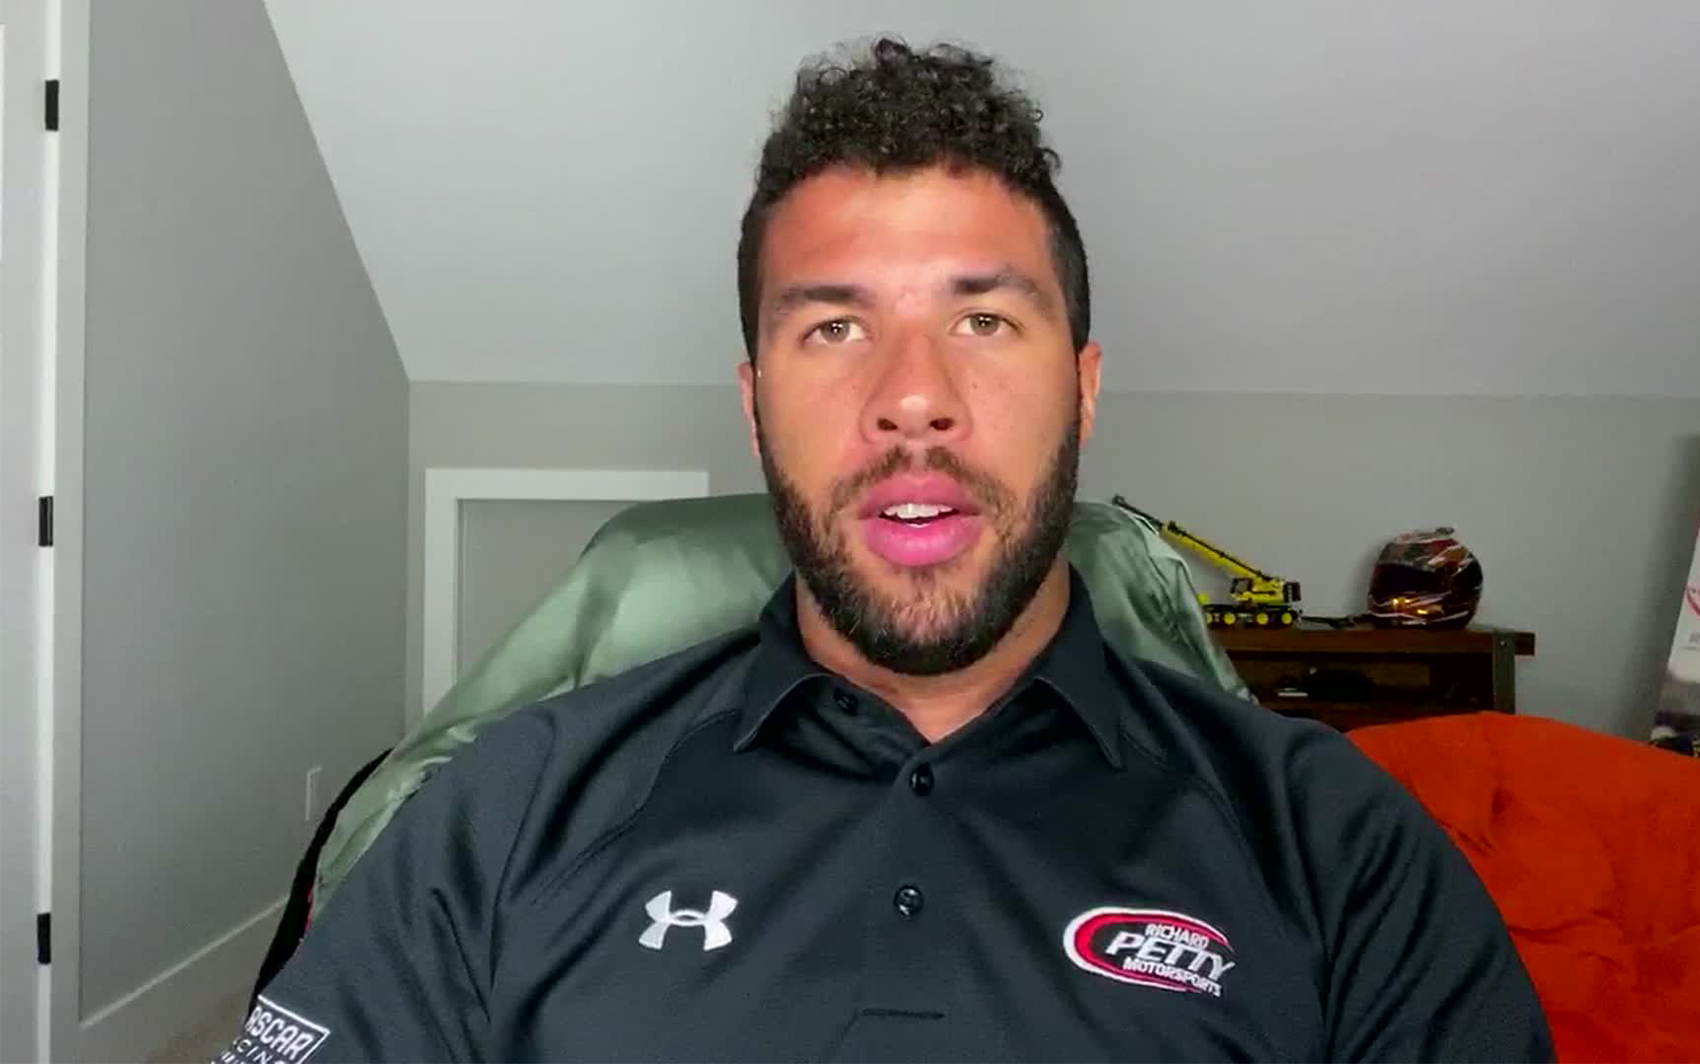 NASCAR's Bubba Wallace responds to FBI report on noose found in his garage. (CNN)